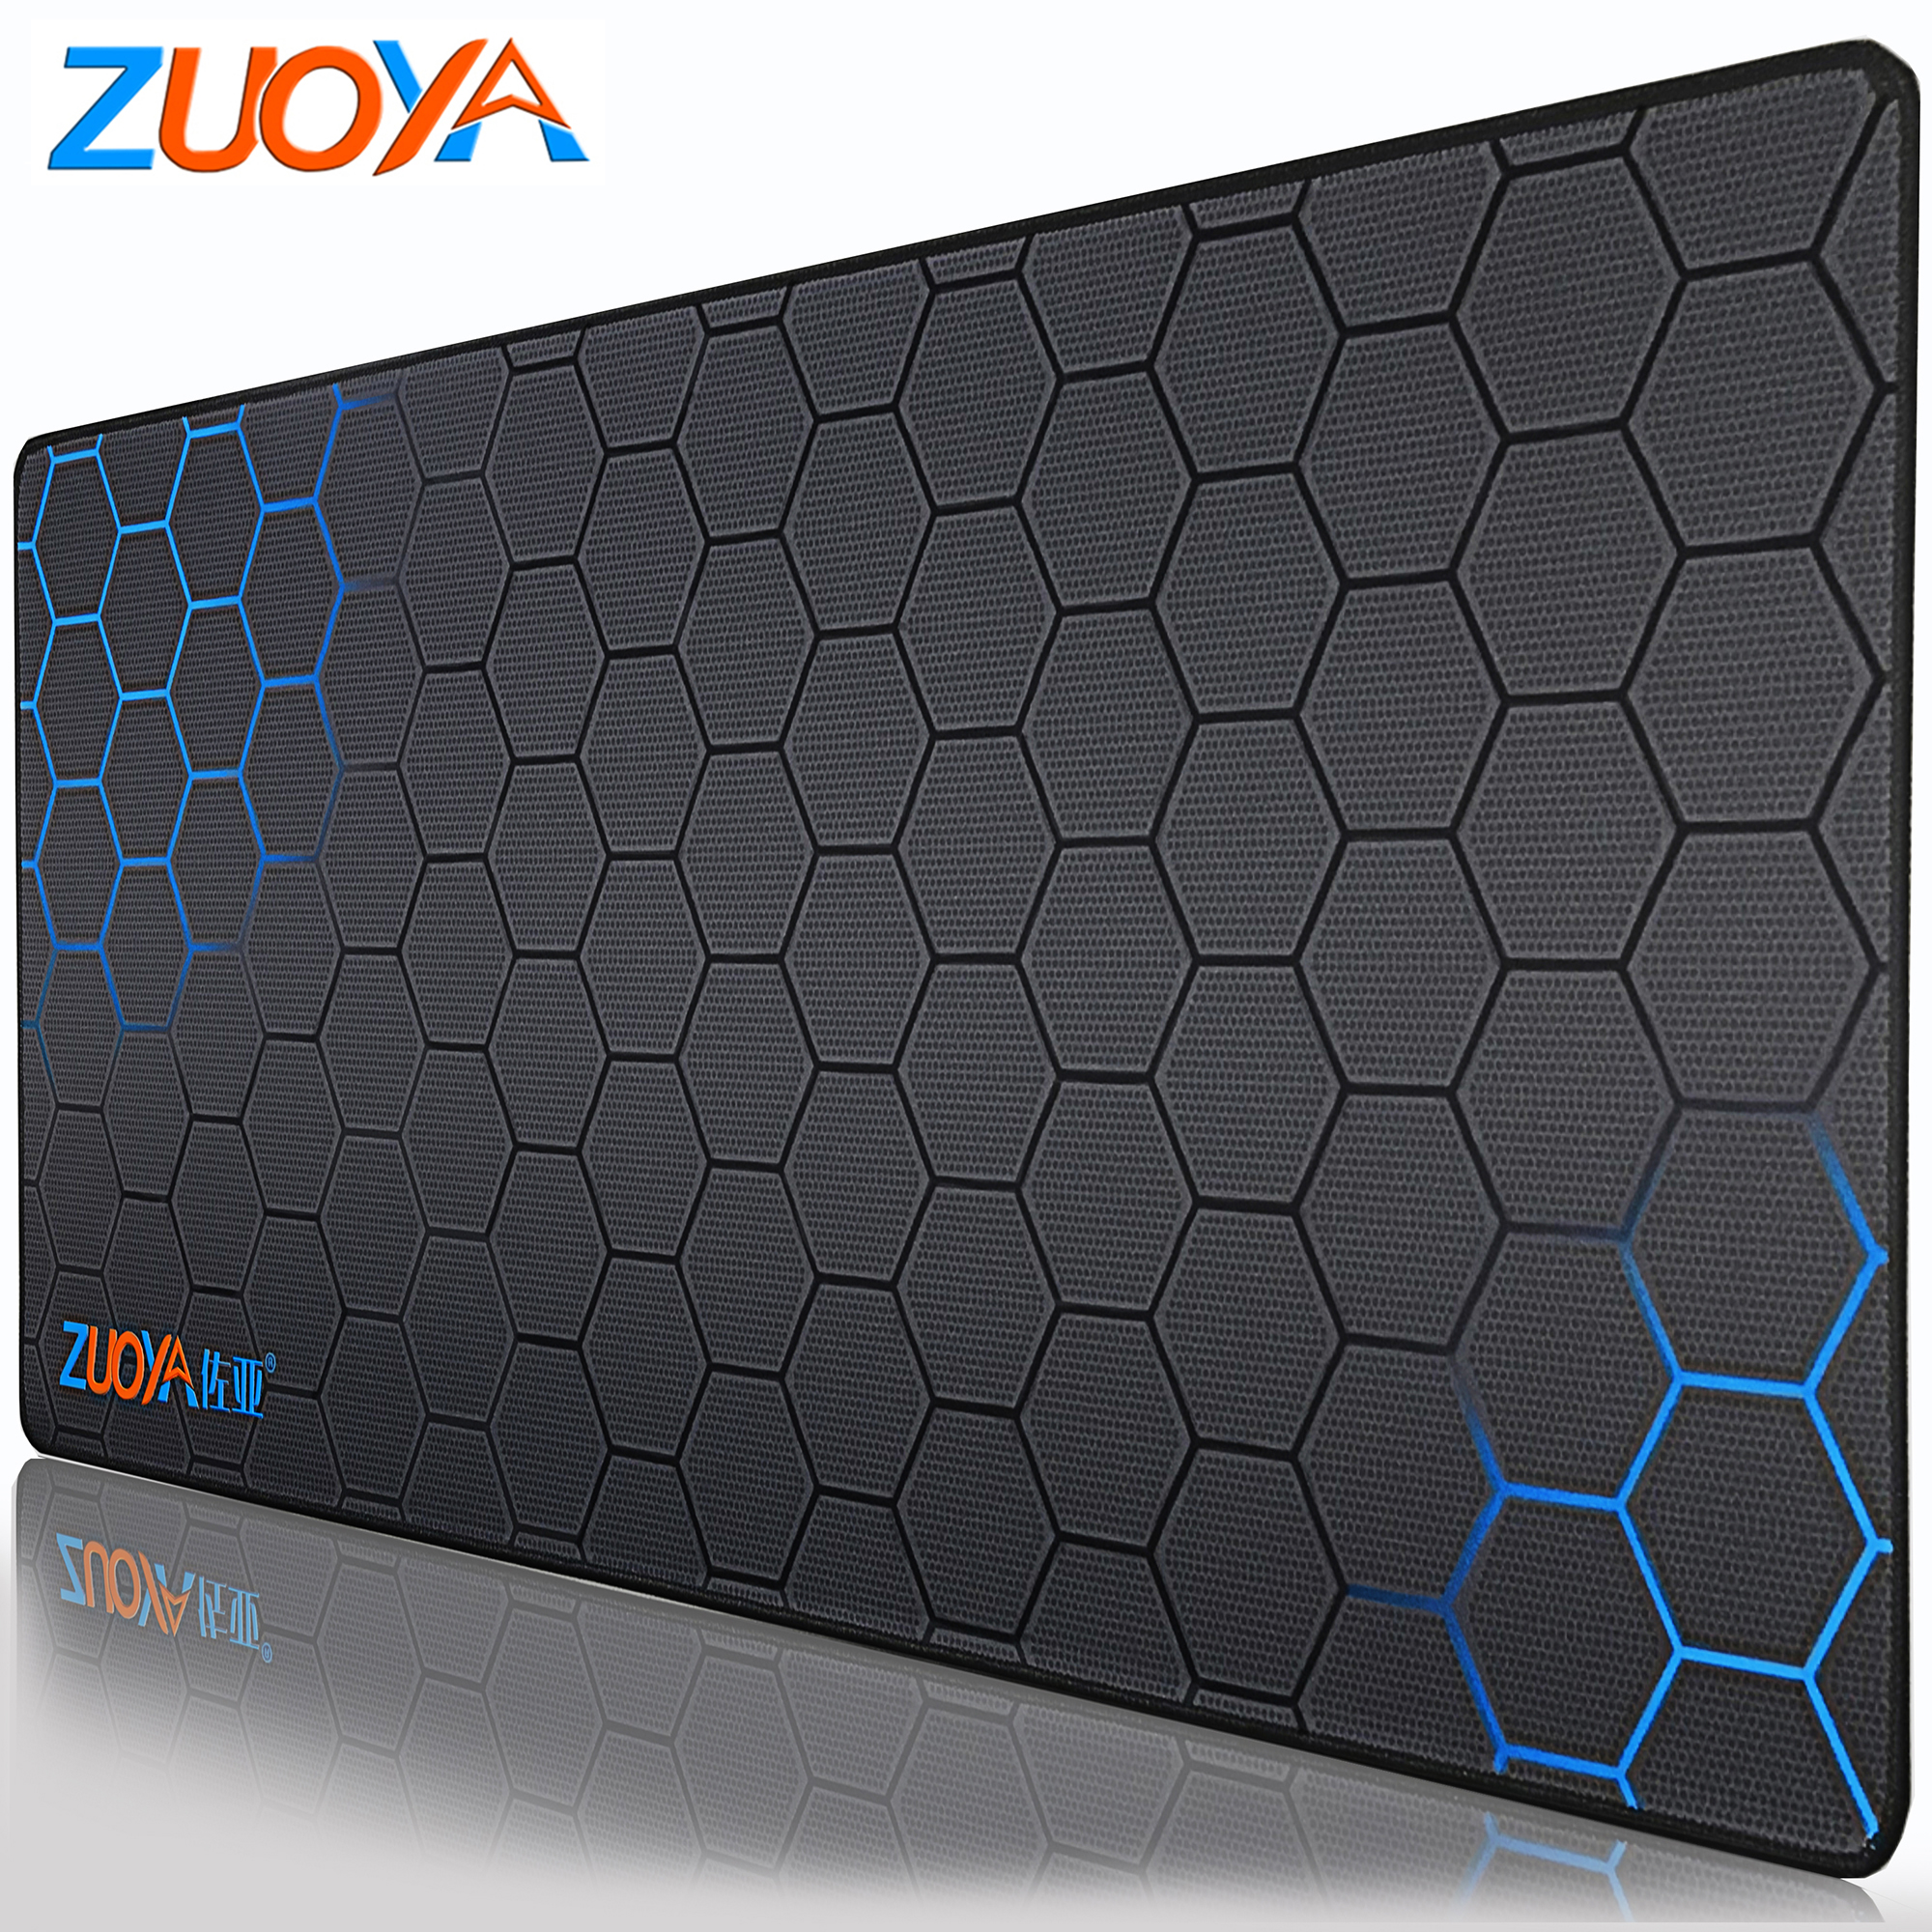 Extra Large <font><b>Gaming</b></font> <font><b>Mouse</b></font> Pad Gamer Computer Big <font><b>Mouse</b></font> Mat Locking Edge Speed <font><b>Mousepad</b></font> <font><b>Keyboard</b></font> Desk Mat Anti-slip Natural Rubber image